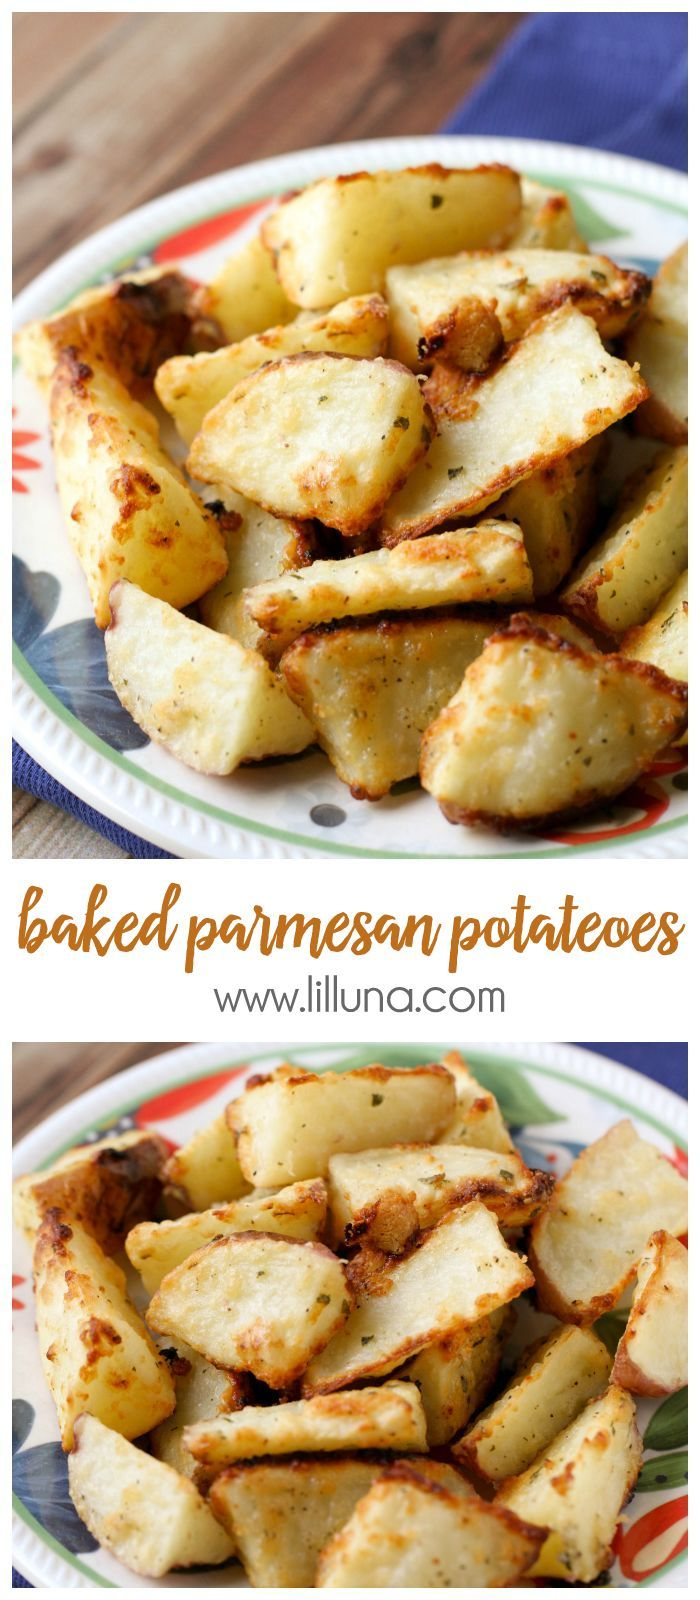 Simple and Delicious Baked Parmesan Potatoes recipe - the PERFECT side dish! { lilluna.com }